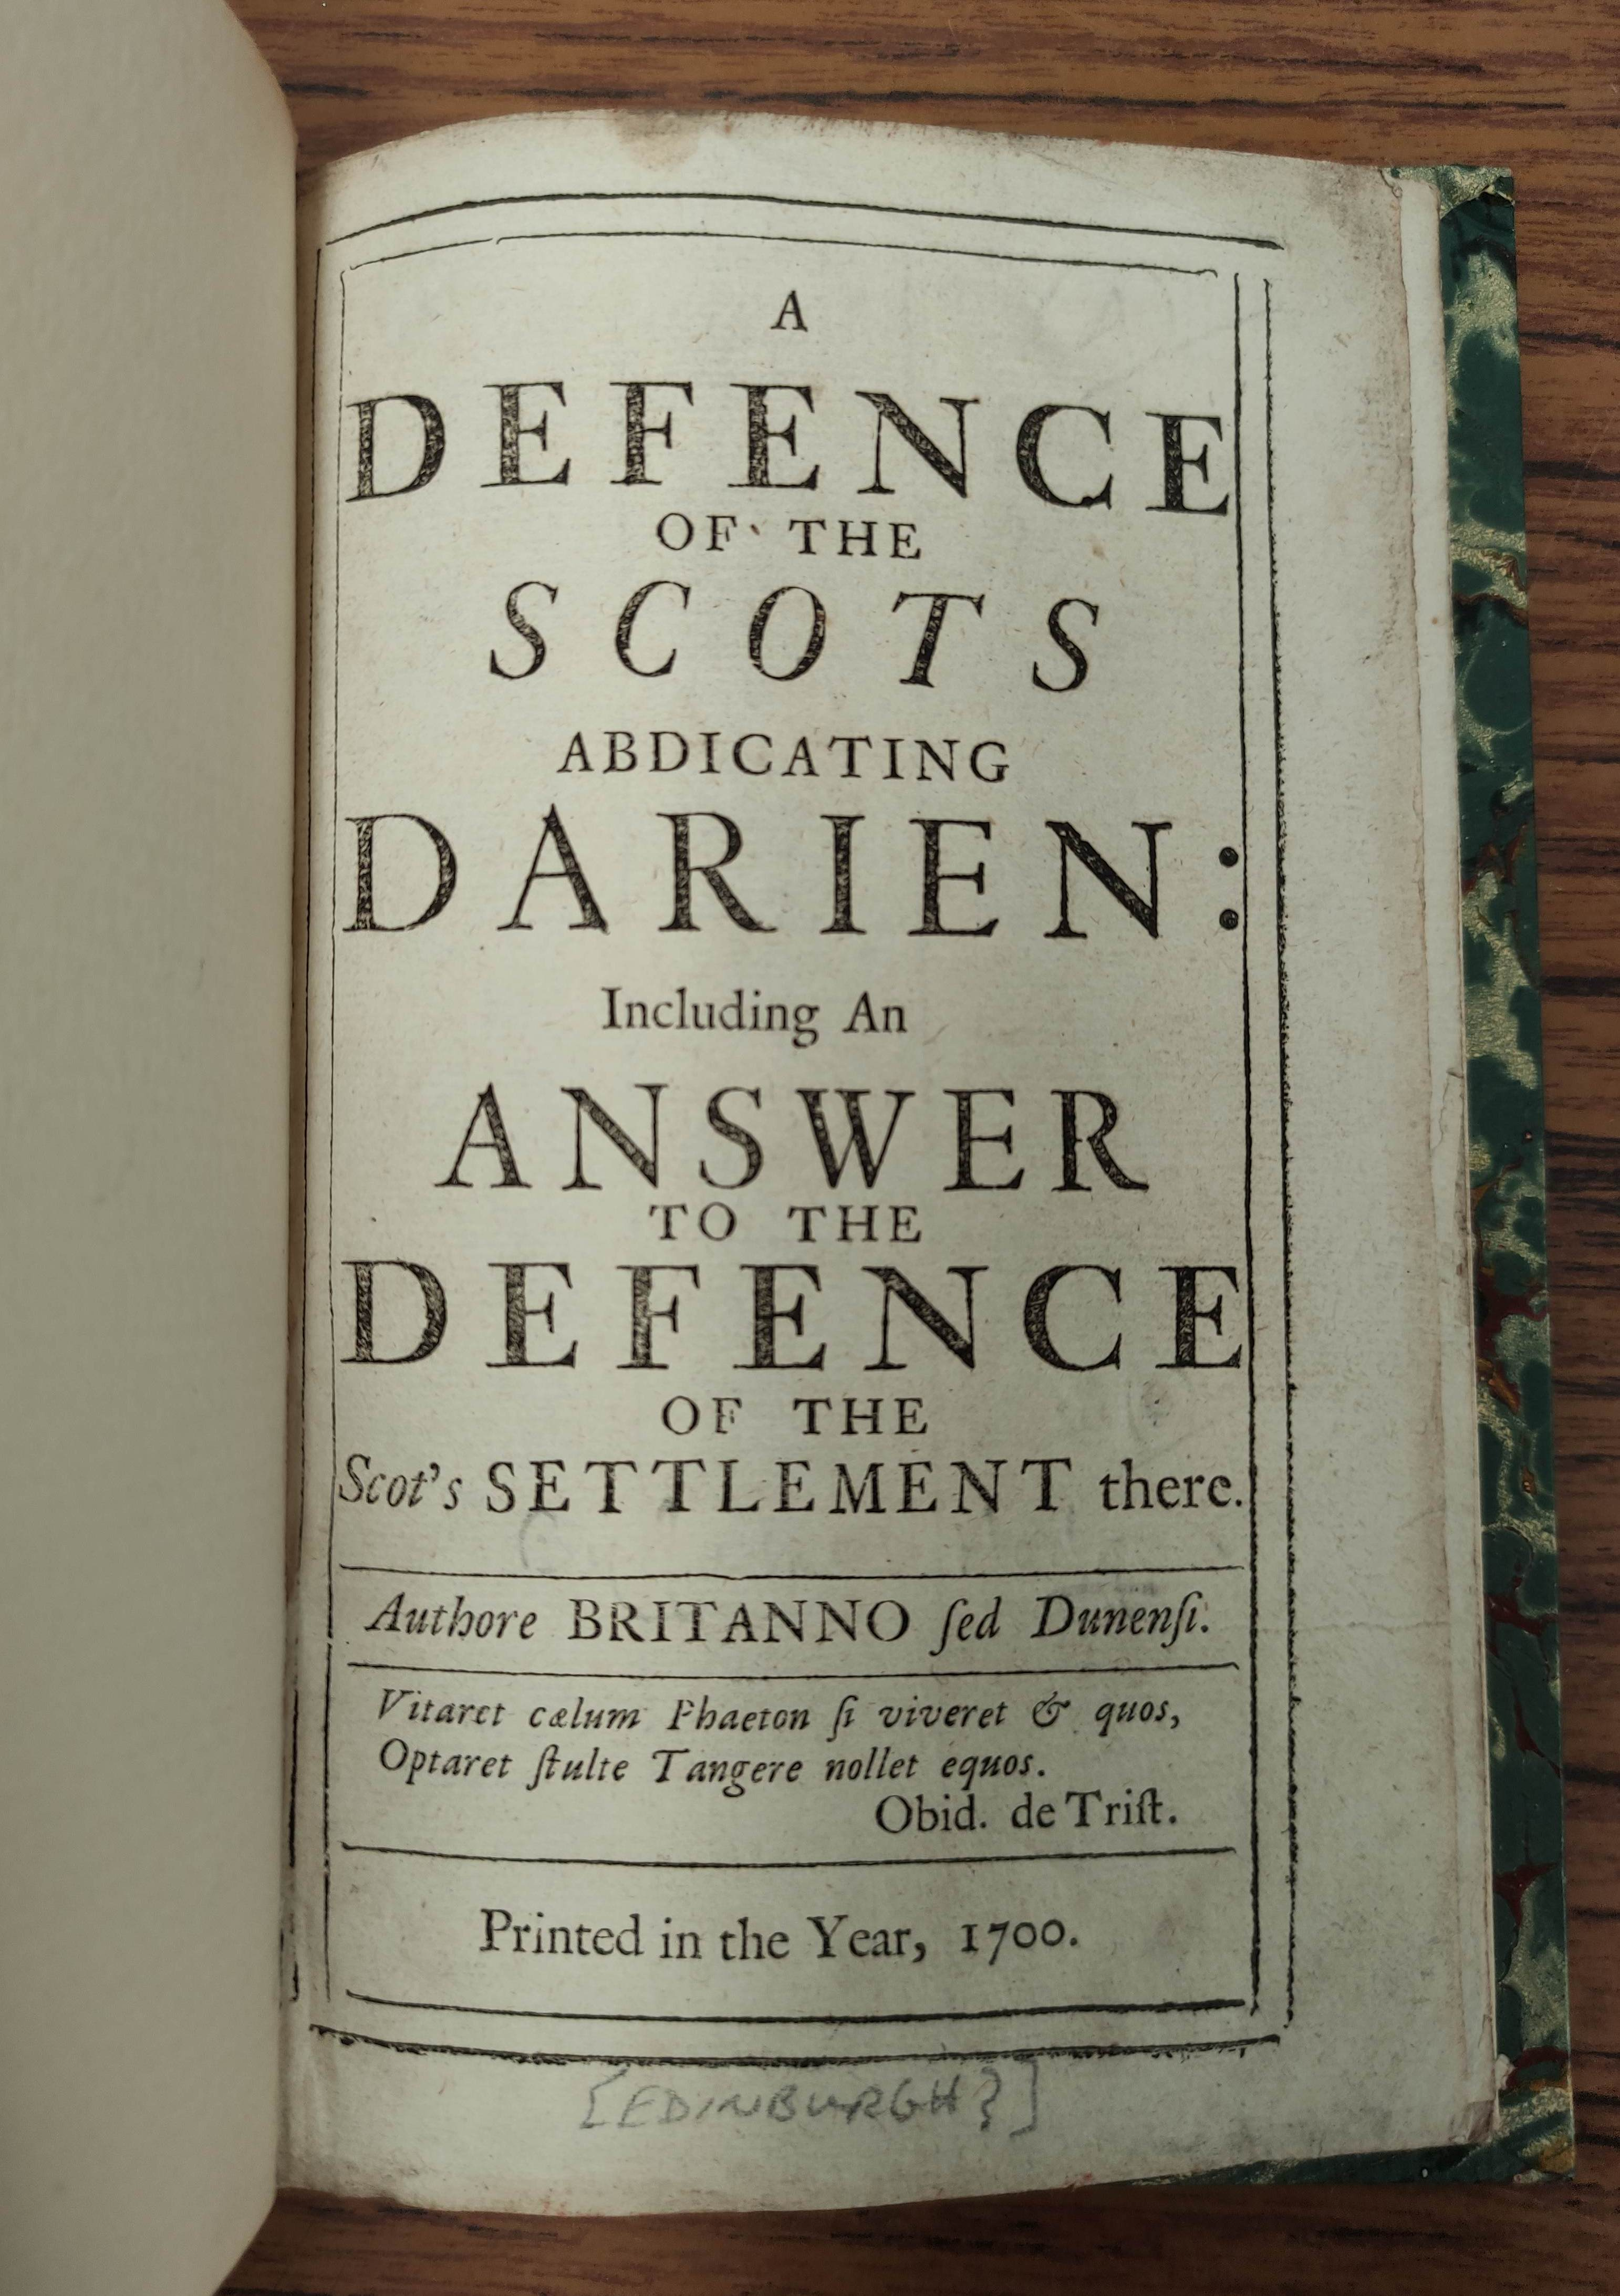 """""""PHILO-CALEDON"""" (poss. Lord Belhaven). A Defence of the Scots Settlement at Darien with an Answer - Image 7 of 9"""